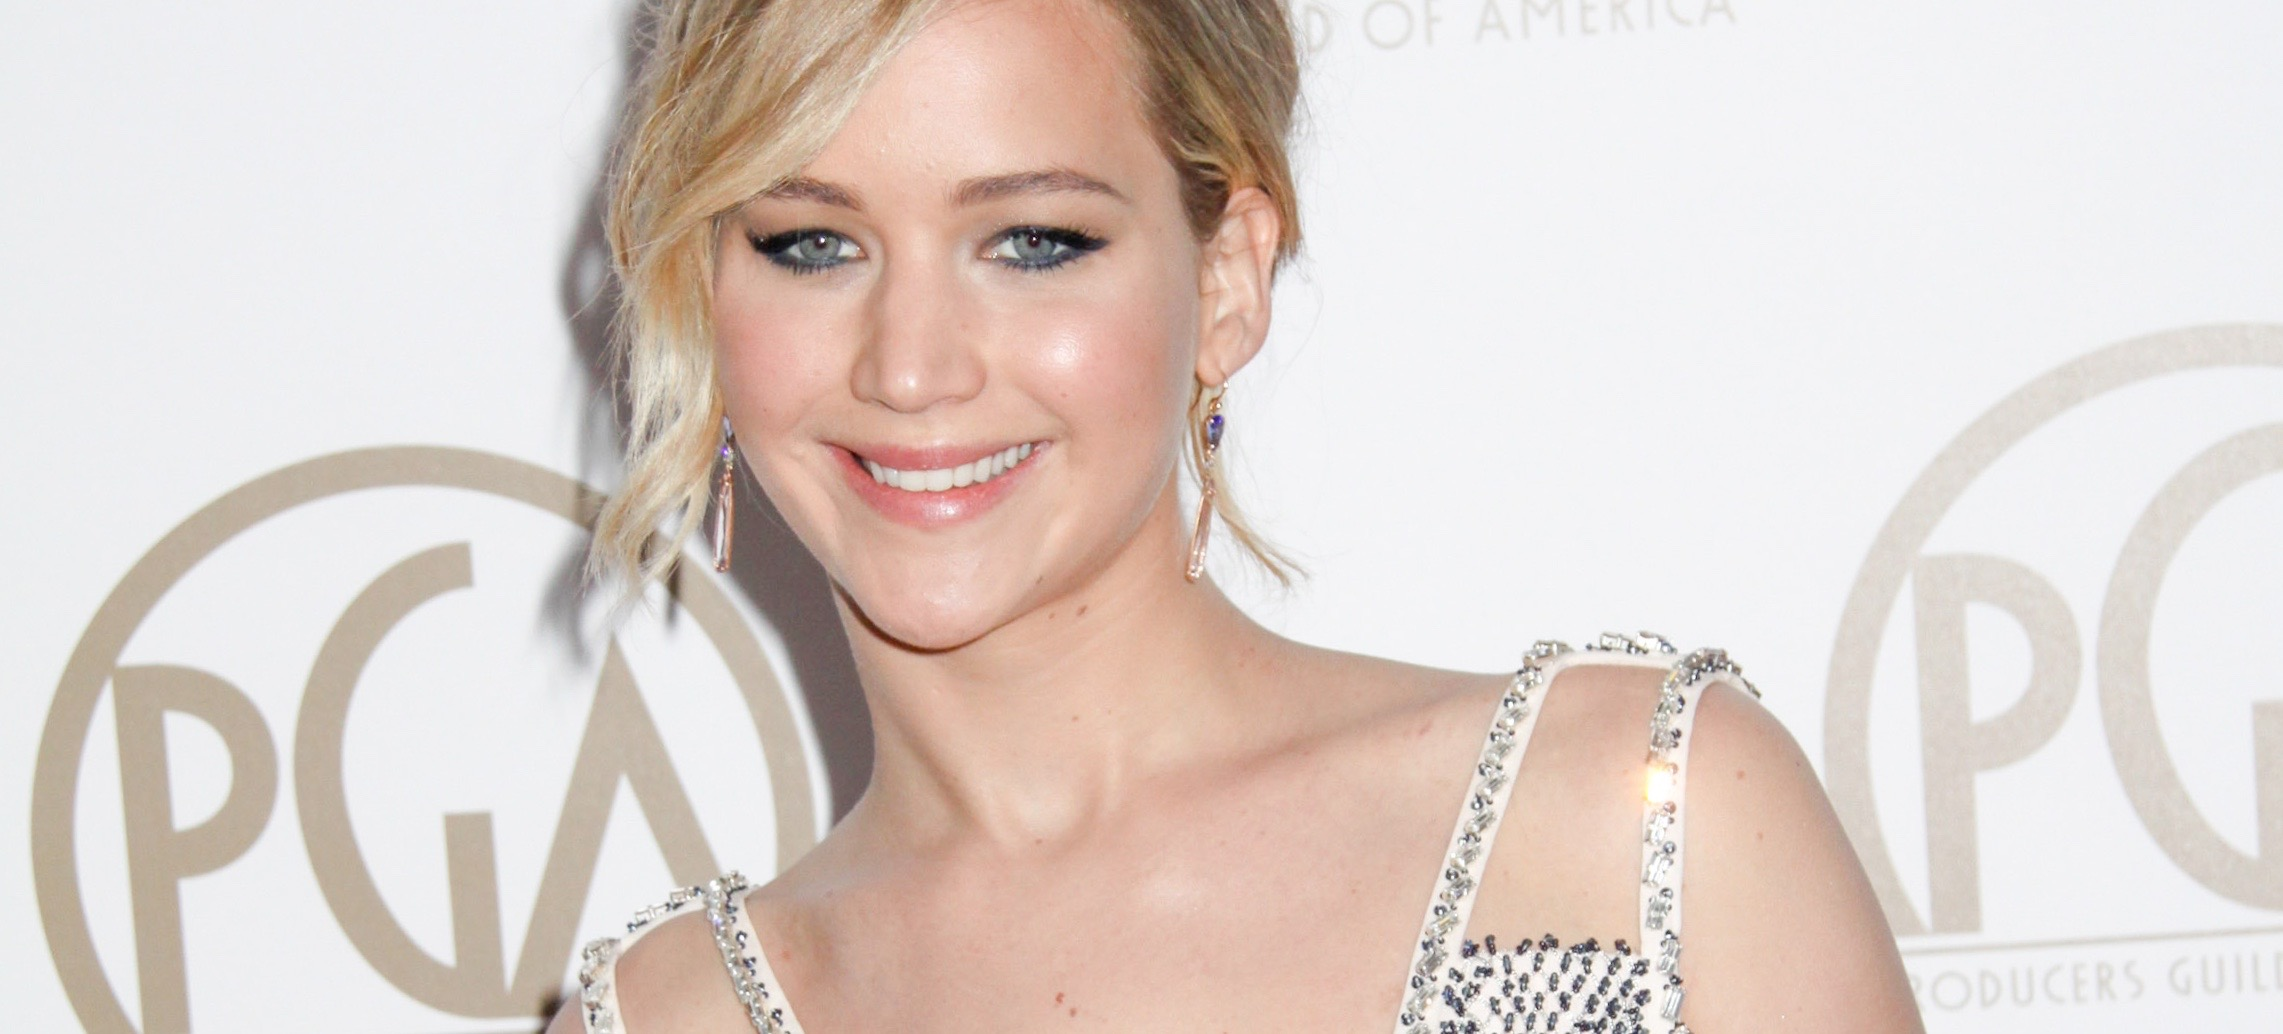 10 Celebs Share Inspiring Body Image Quotes